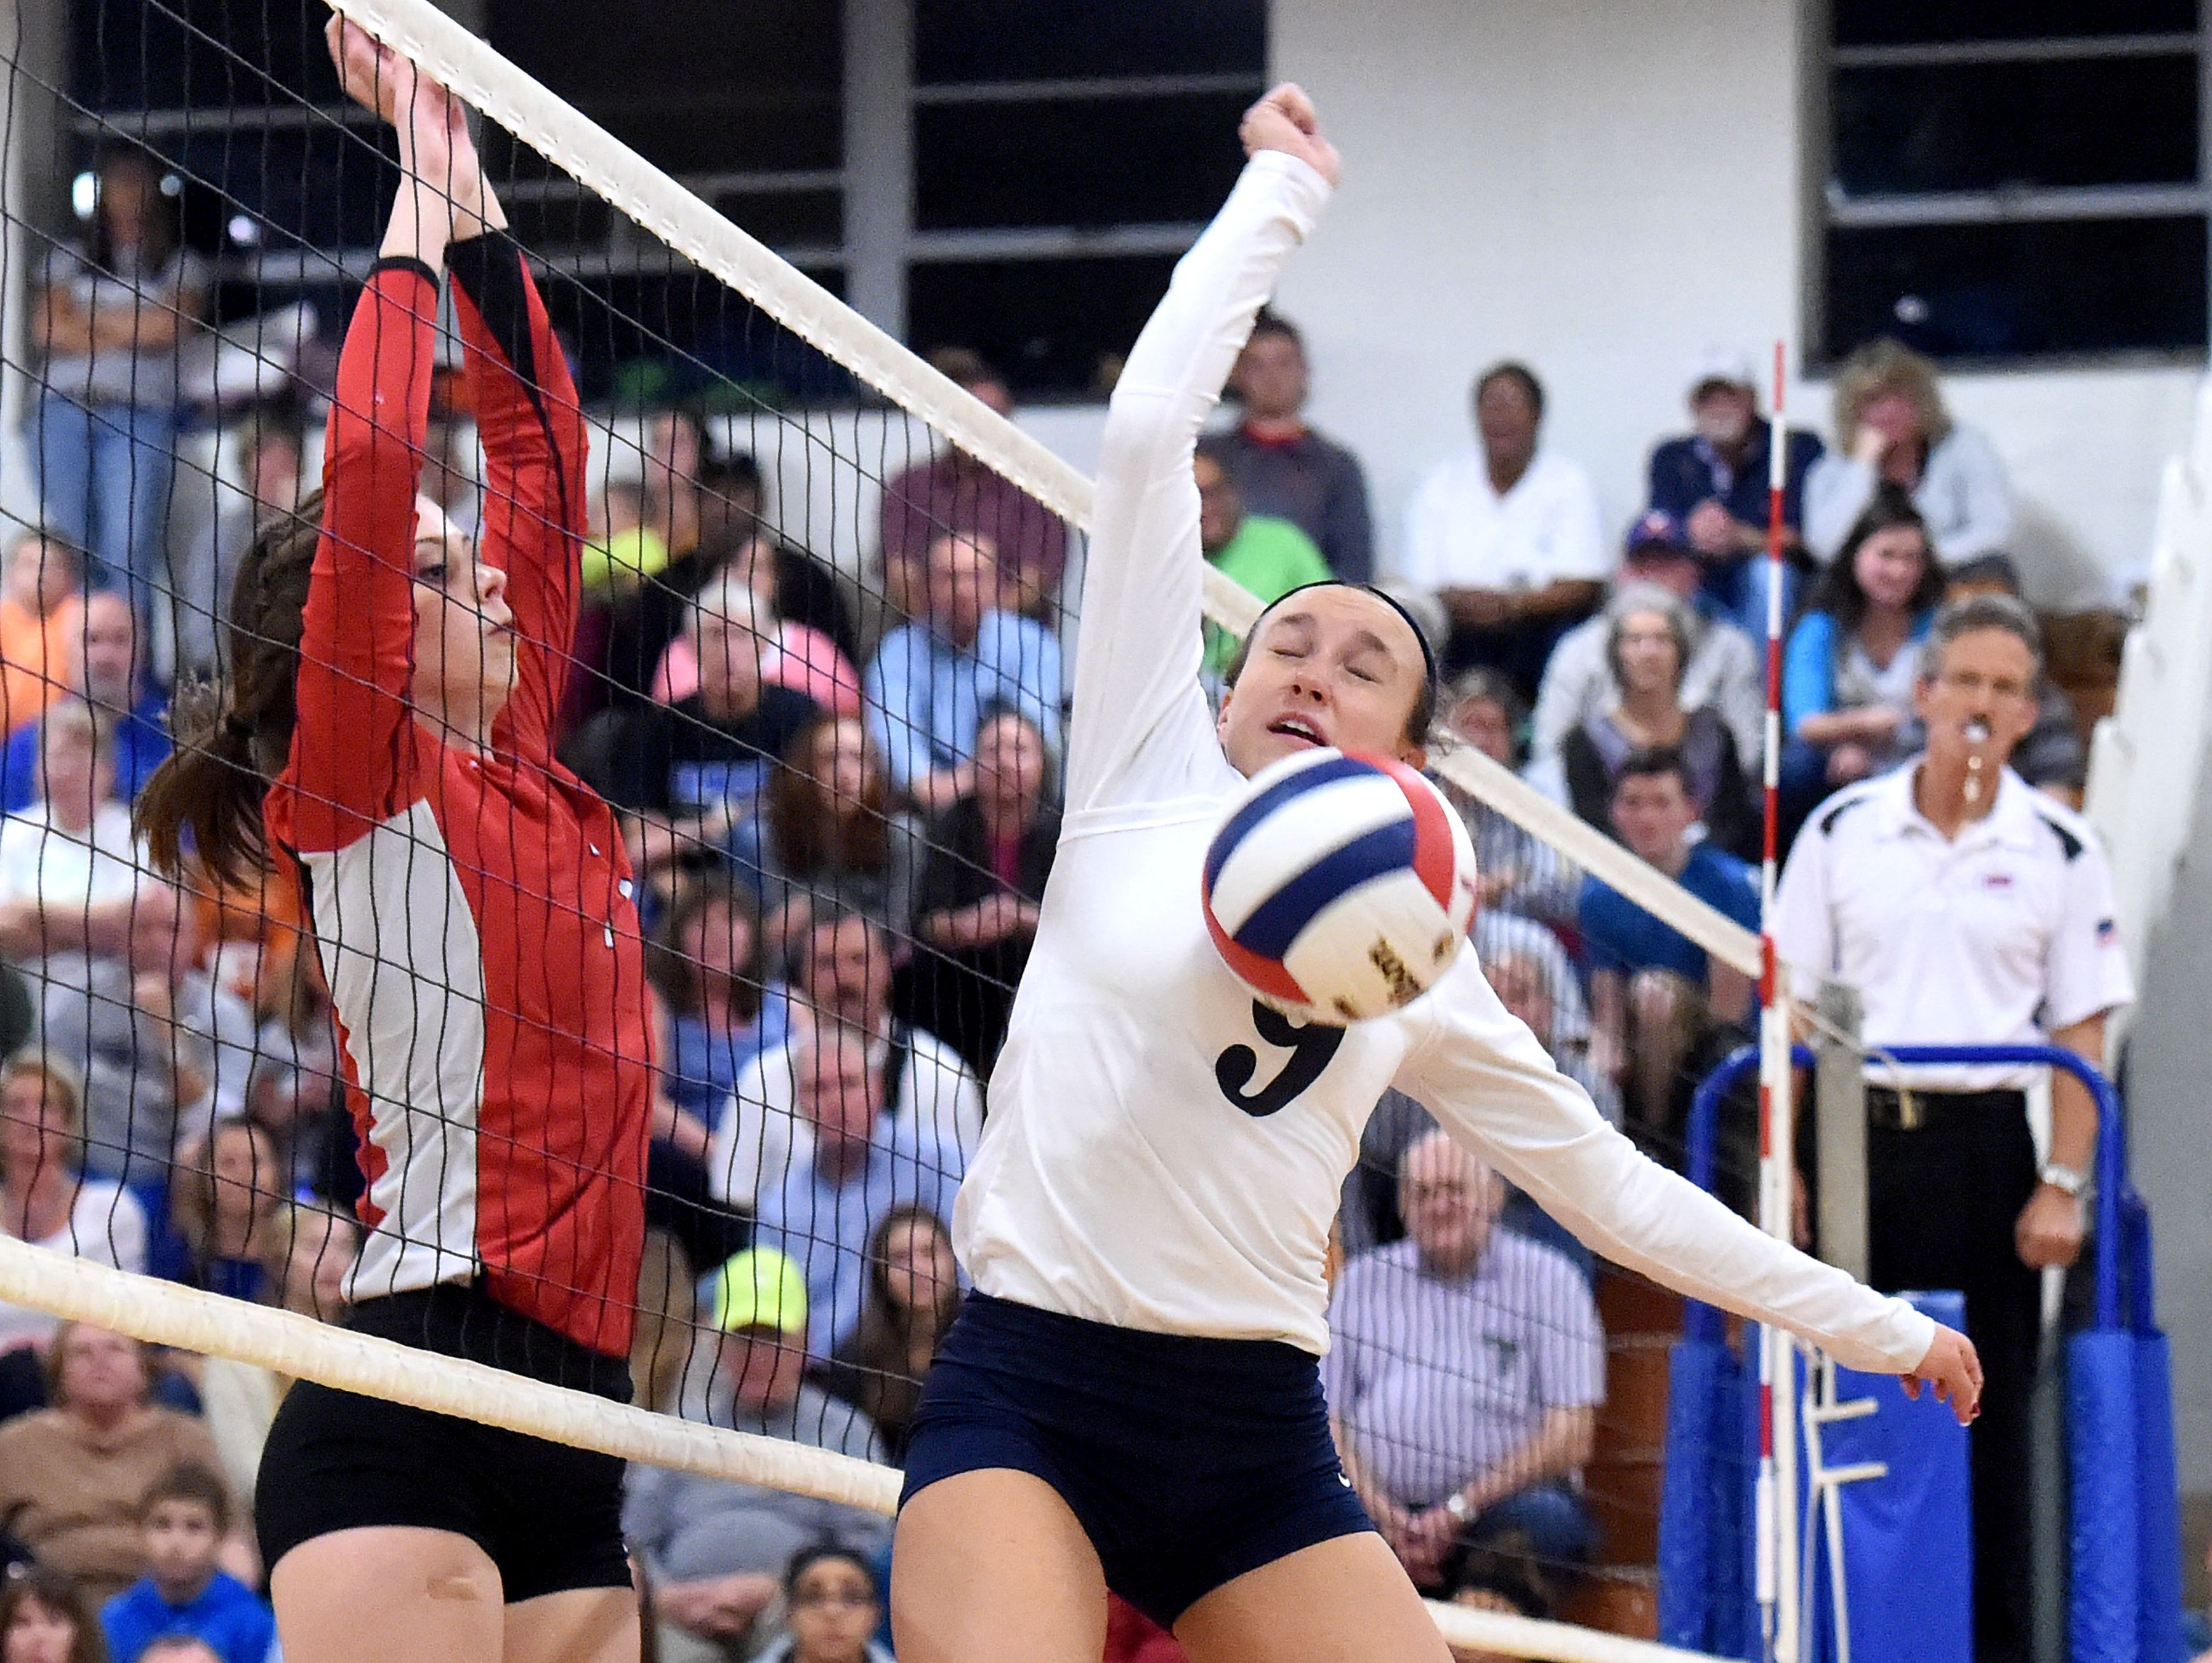 Robert E. Lee's Camryn Shull is blocked at the net during a volleyball game played in Staunton on Tuesday, Nov. 15, 2016. Lee High beat Giles High School to win the 2A state semifinal match, 3-1.